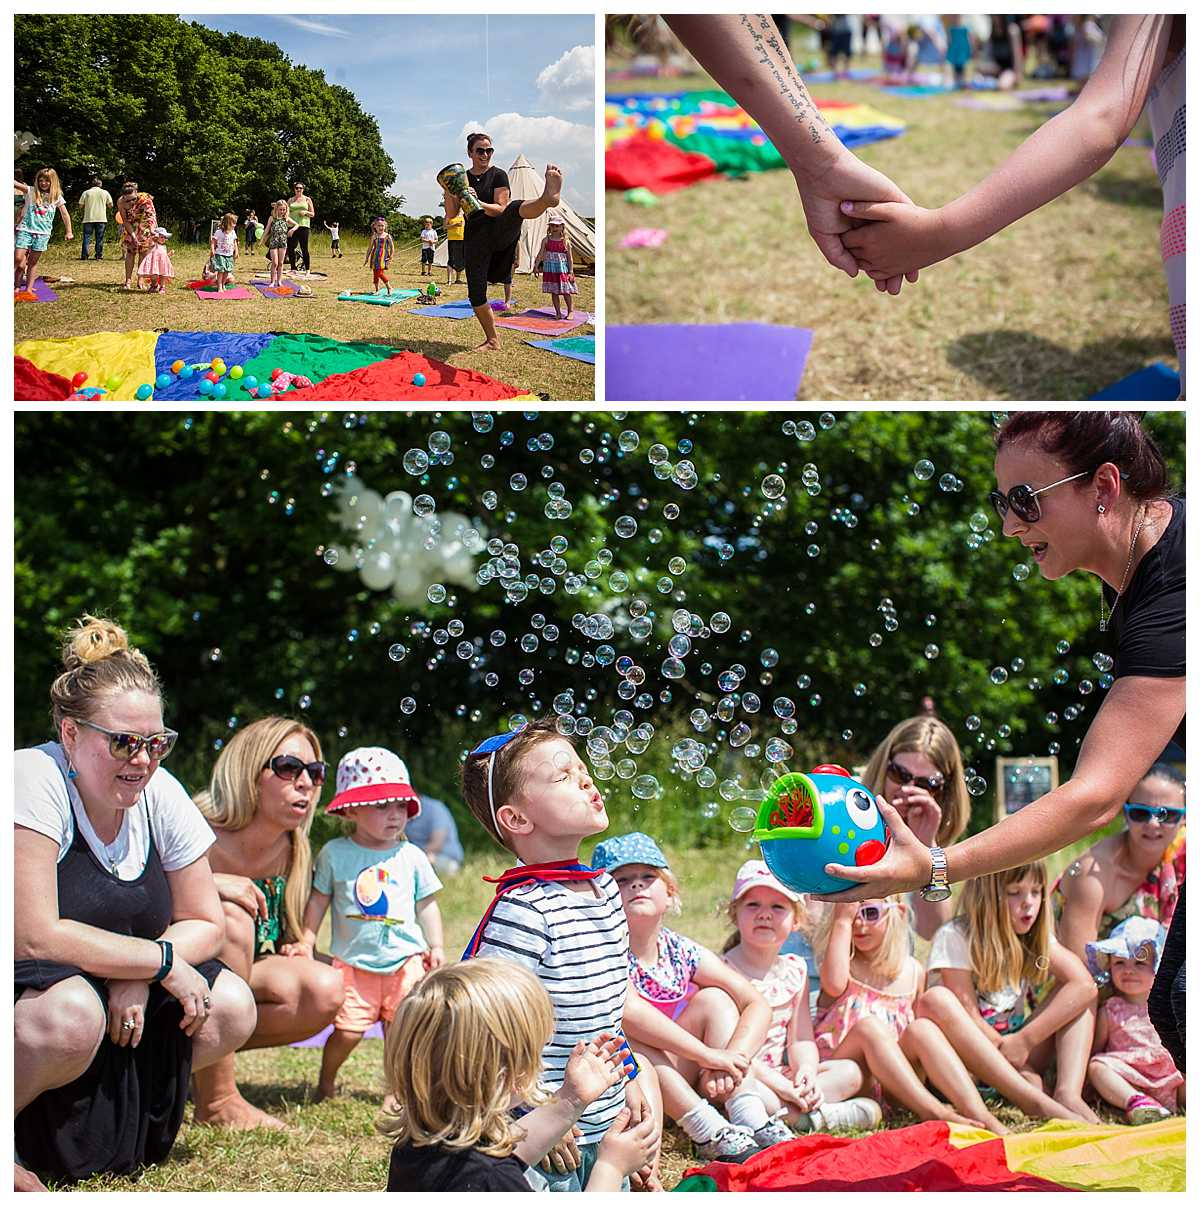 yoga for the kids at the parentfolk outdoors event - wirral event photographer